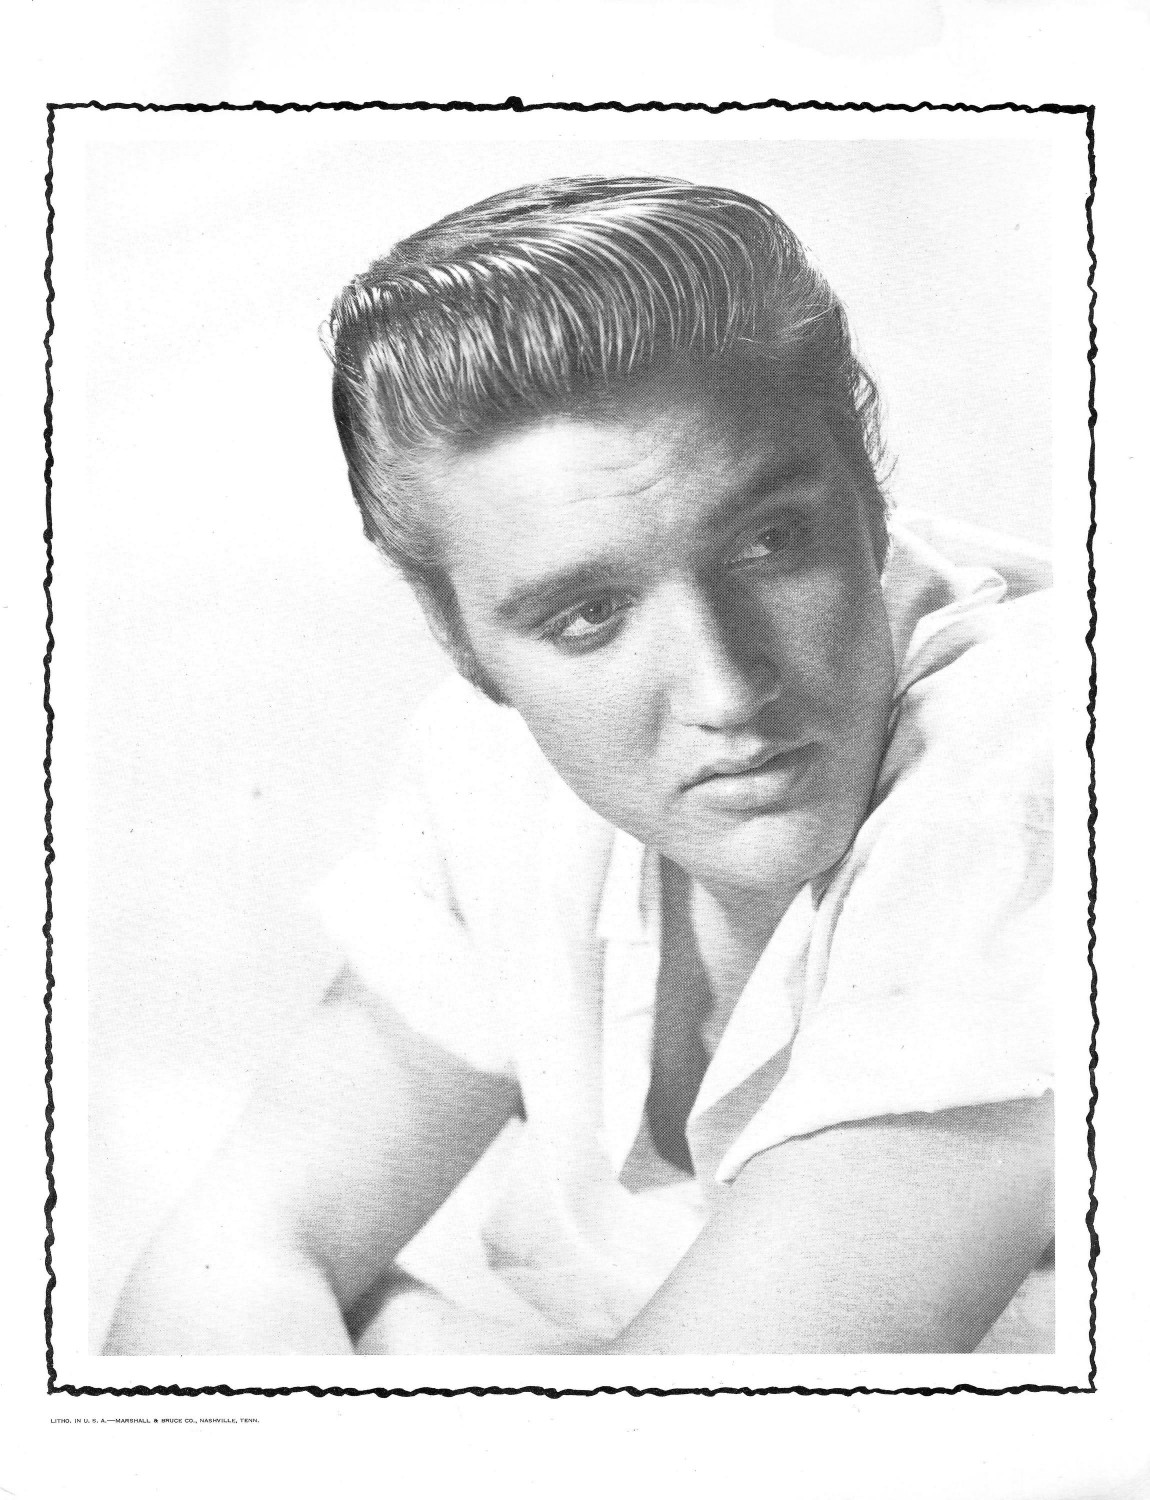 Elvis Presley Souvenir Photo Album (Juan Luis) 15